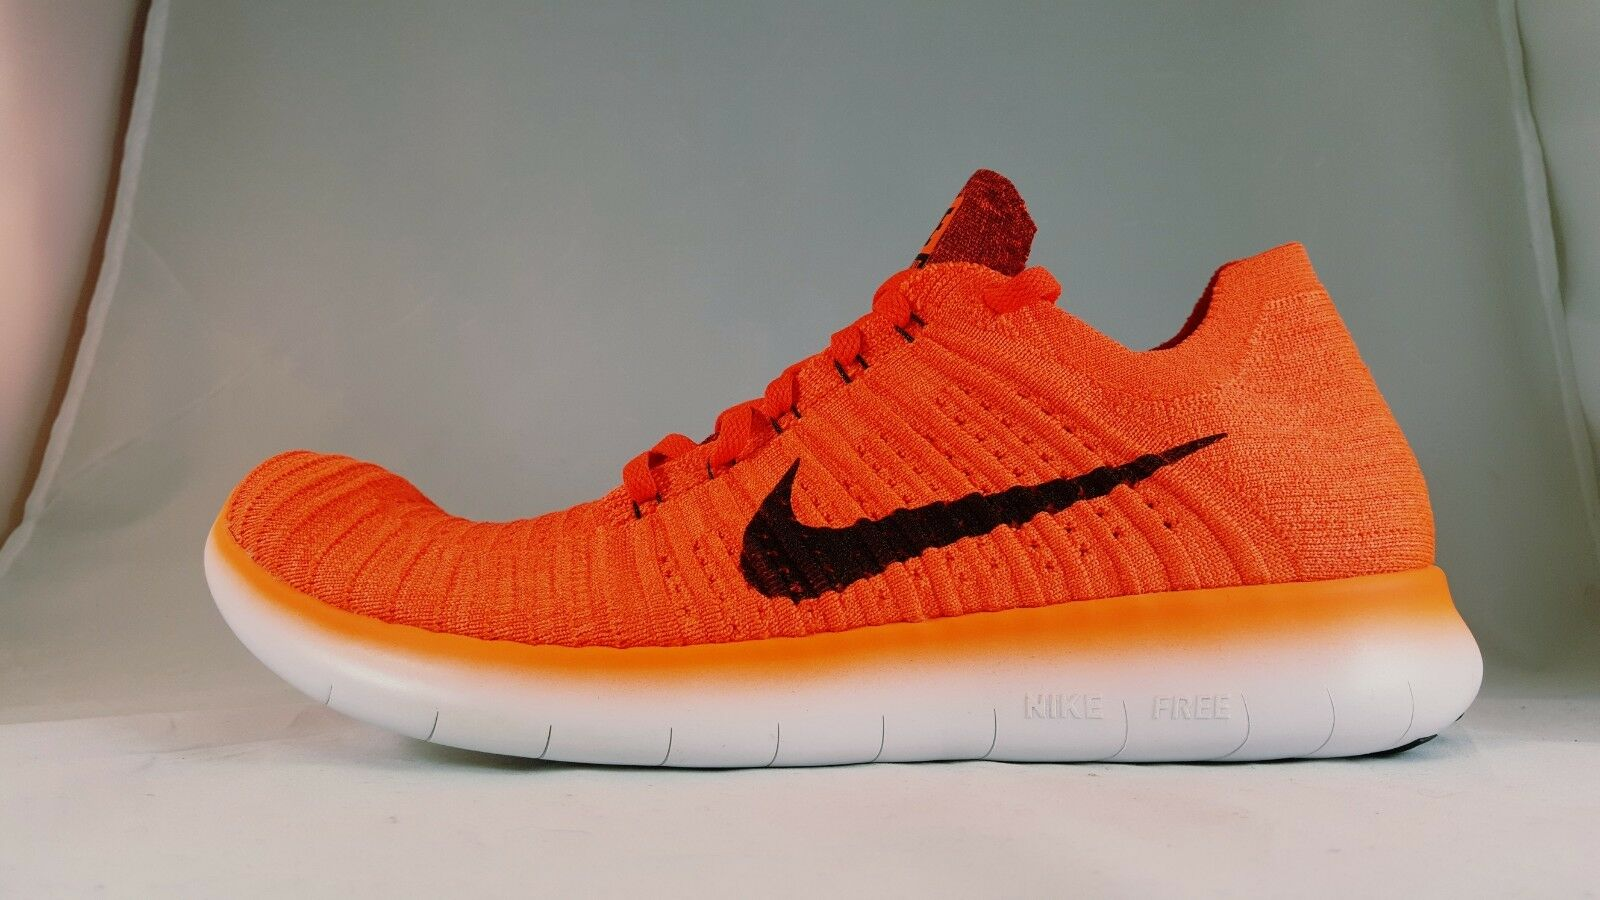 Nike Free RN Flyknit Men's Running shoes 831069 600 Size 10.5